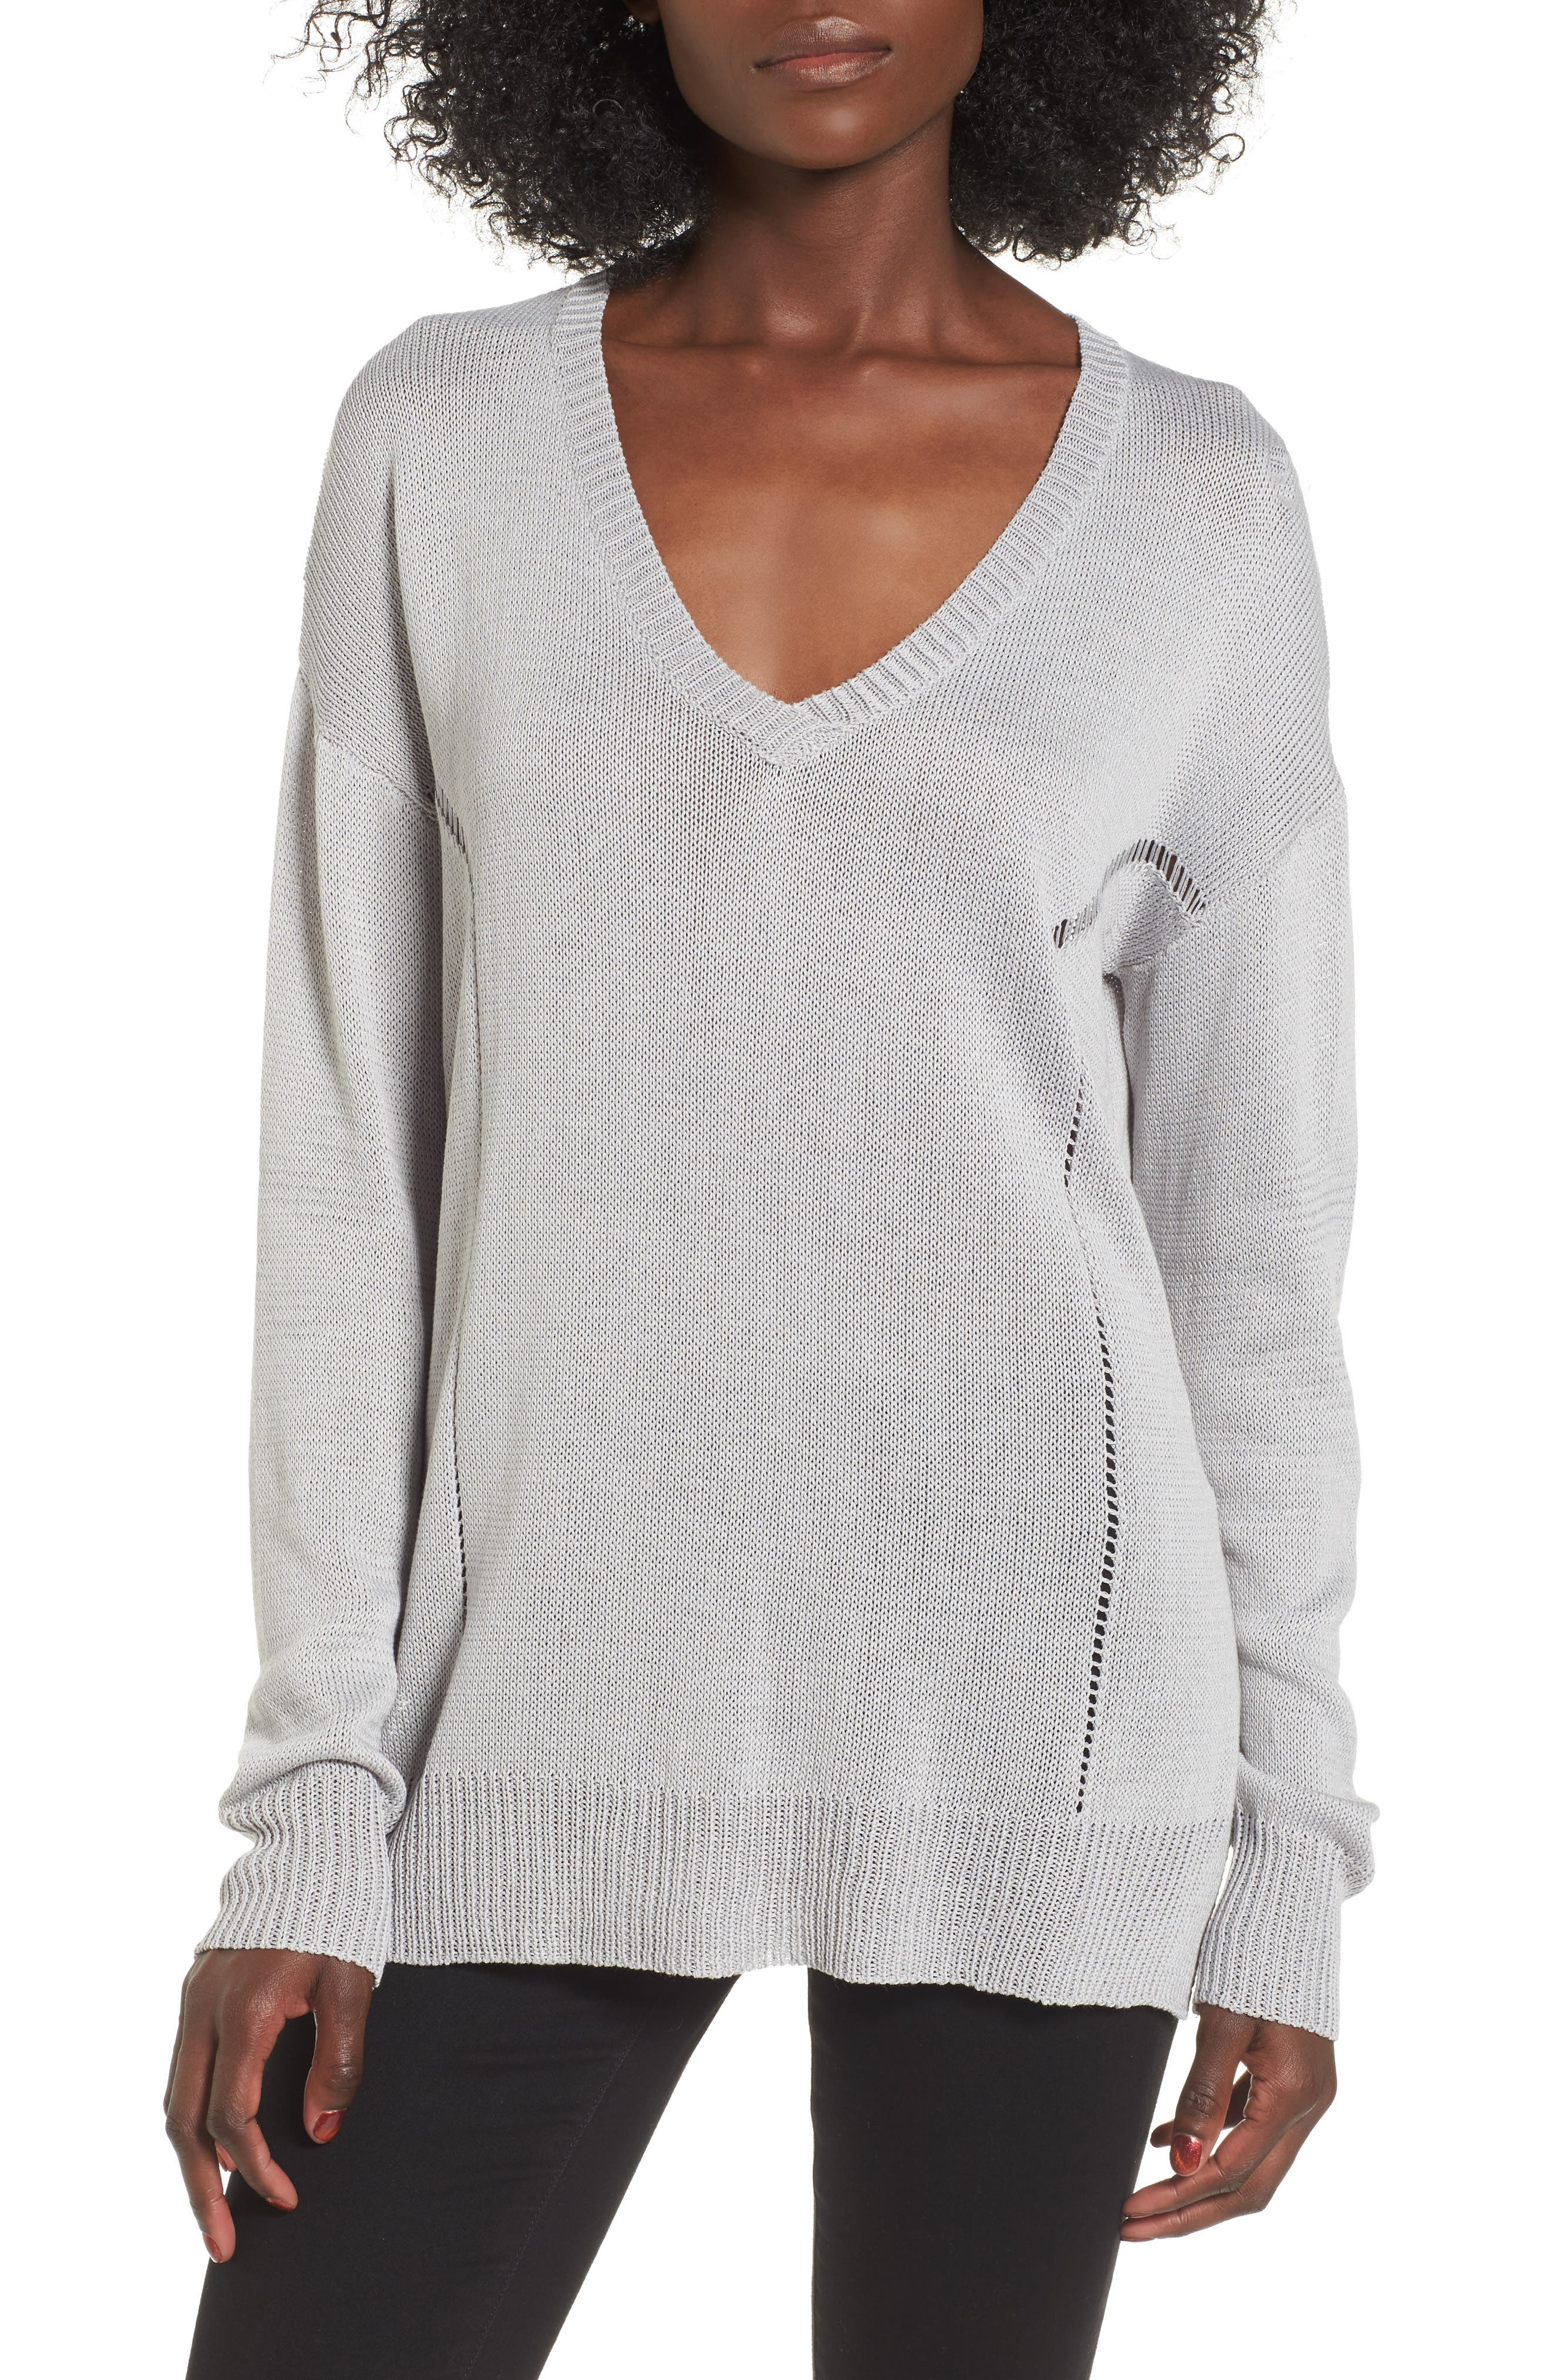 Main Image - ASTR the Label Open Lines V-Neck Sweater